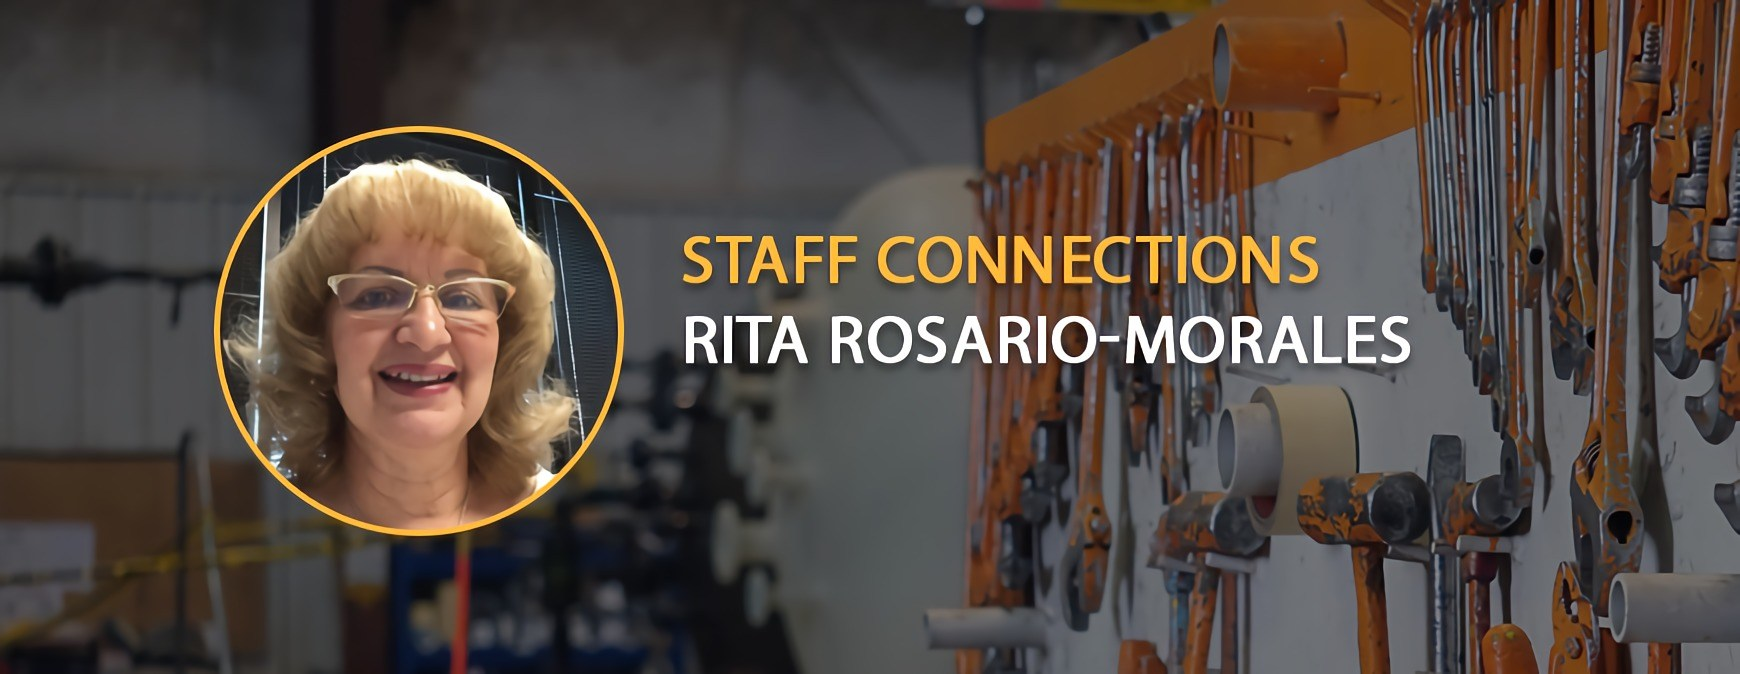 Rita Rosario-Morales Staff Connection